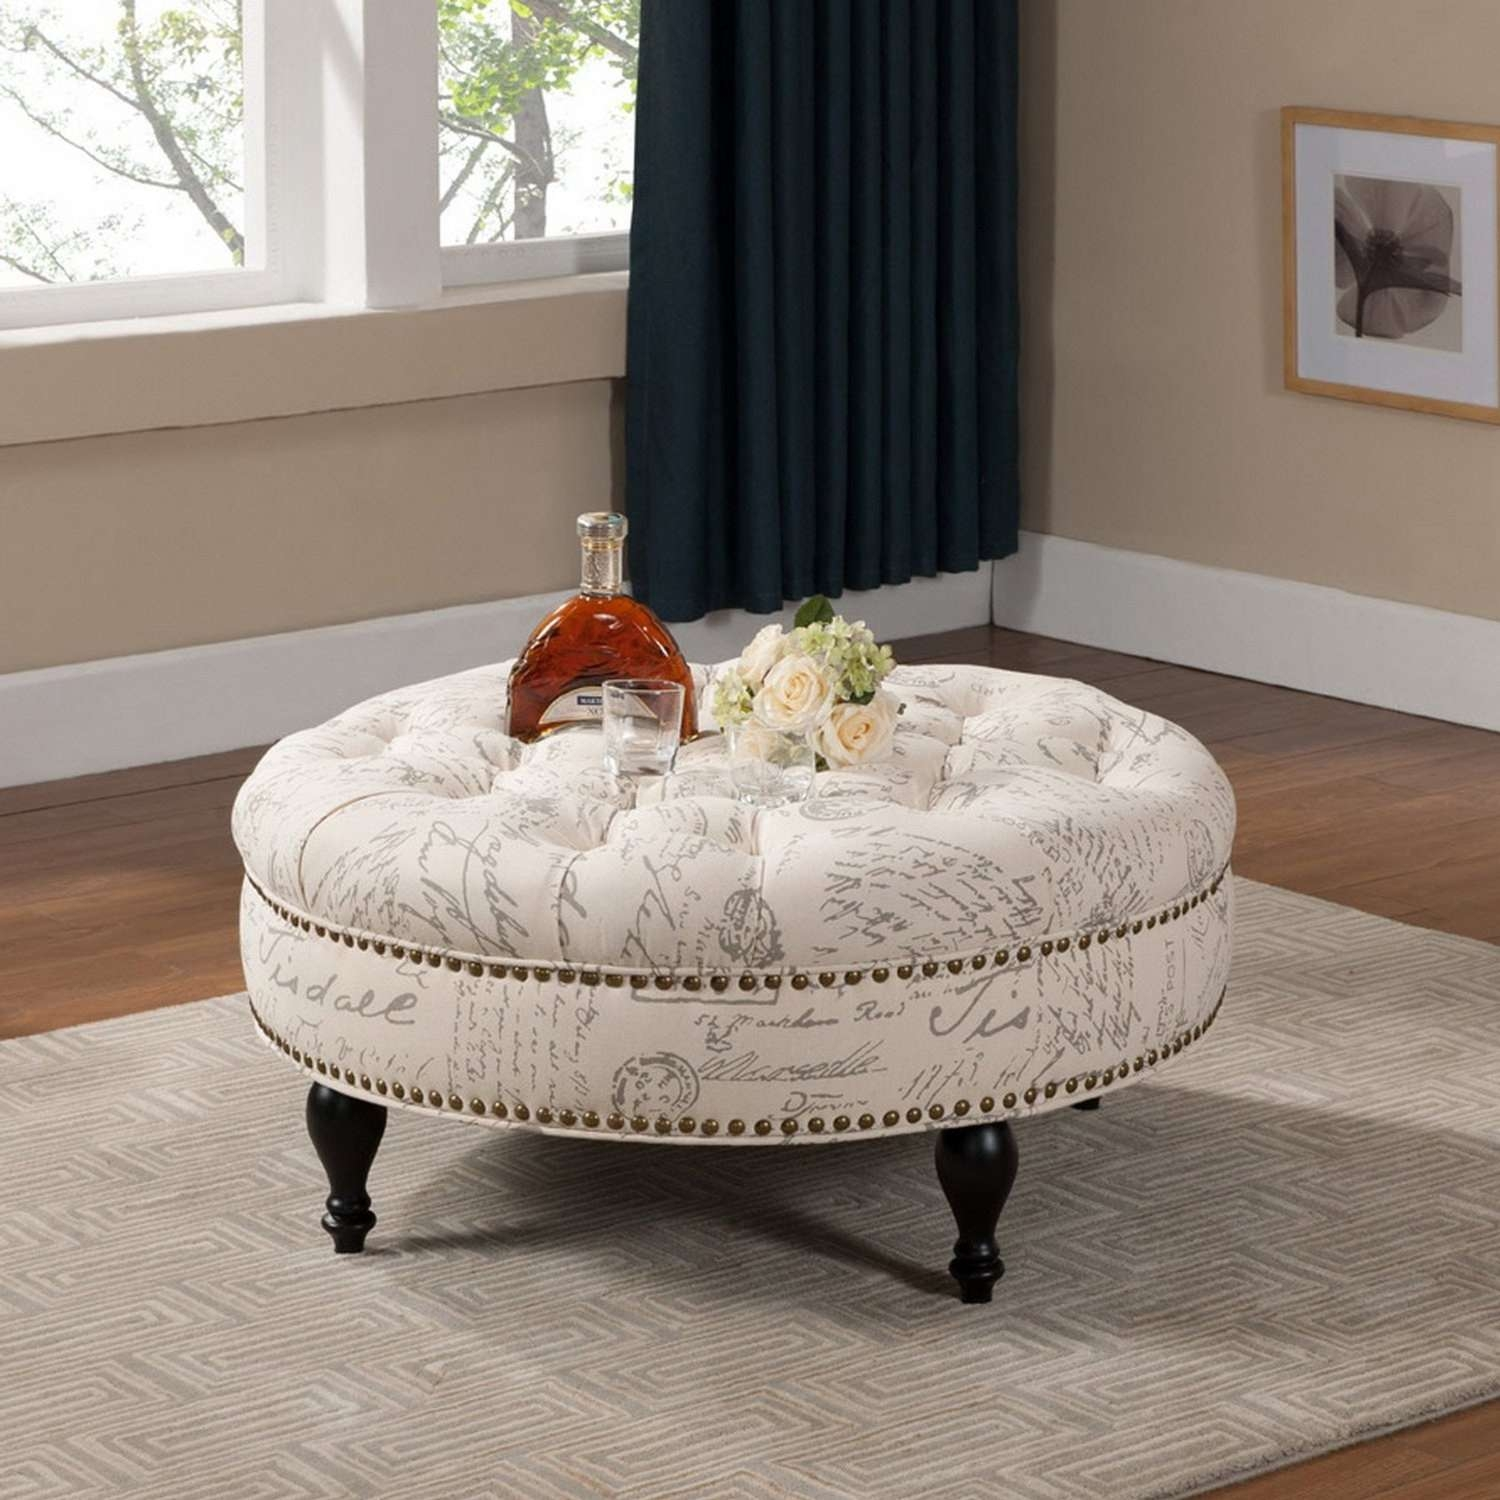 Round Tufted Coffee Table Ottoman Round Tufted Ottoman Coffee Pertaining To 2018 Round Upholstered Coffee Tables (View 18 of 20)